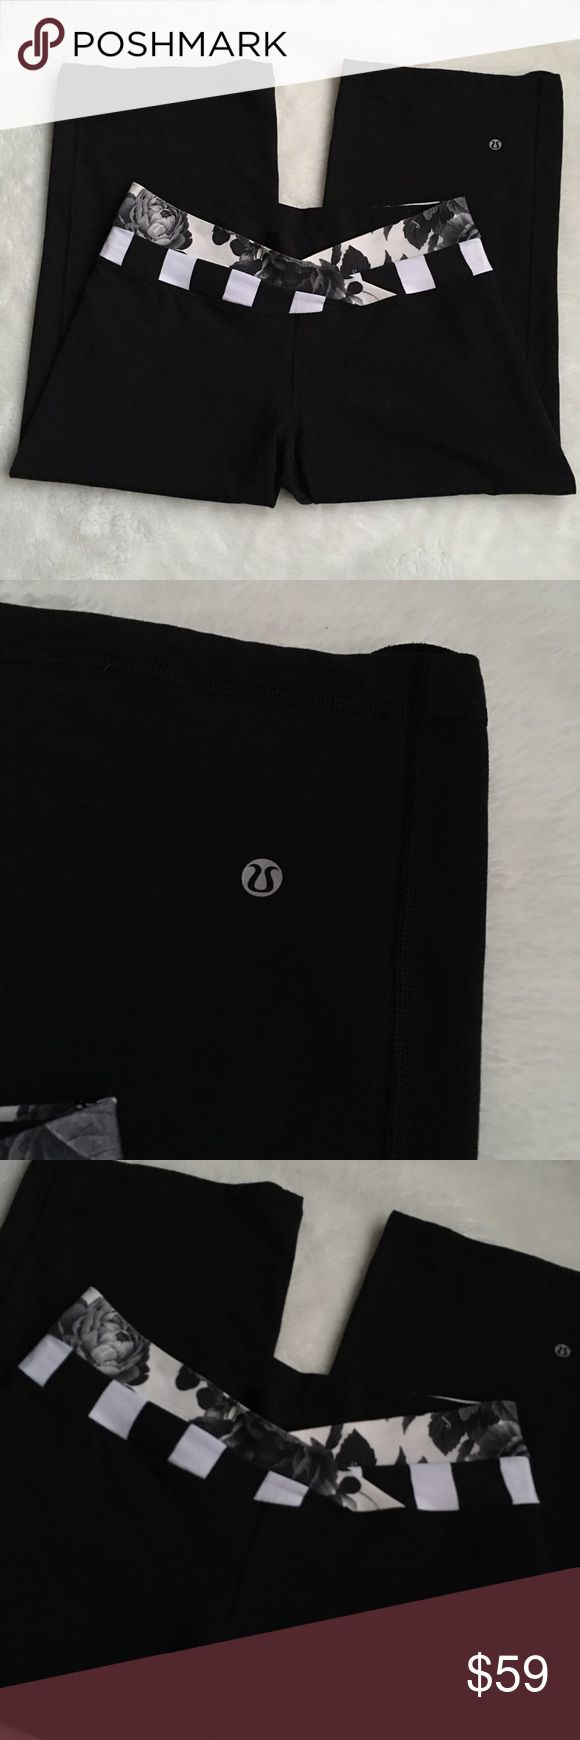 Lululemon Black Cropped Pants size 10 with roses Preowned authentic Lululemon Black Cropped Pants size 10 with roses. Please look at pictures for better reference. Happy shopping!! lululemon athletica Pants